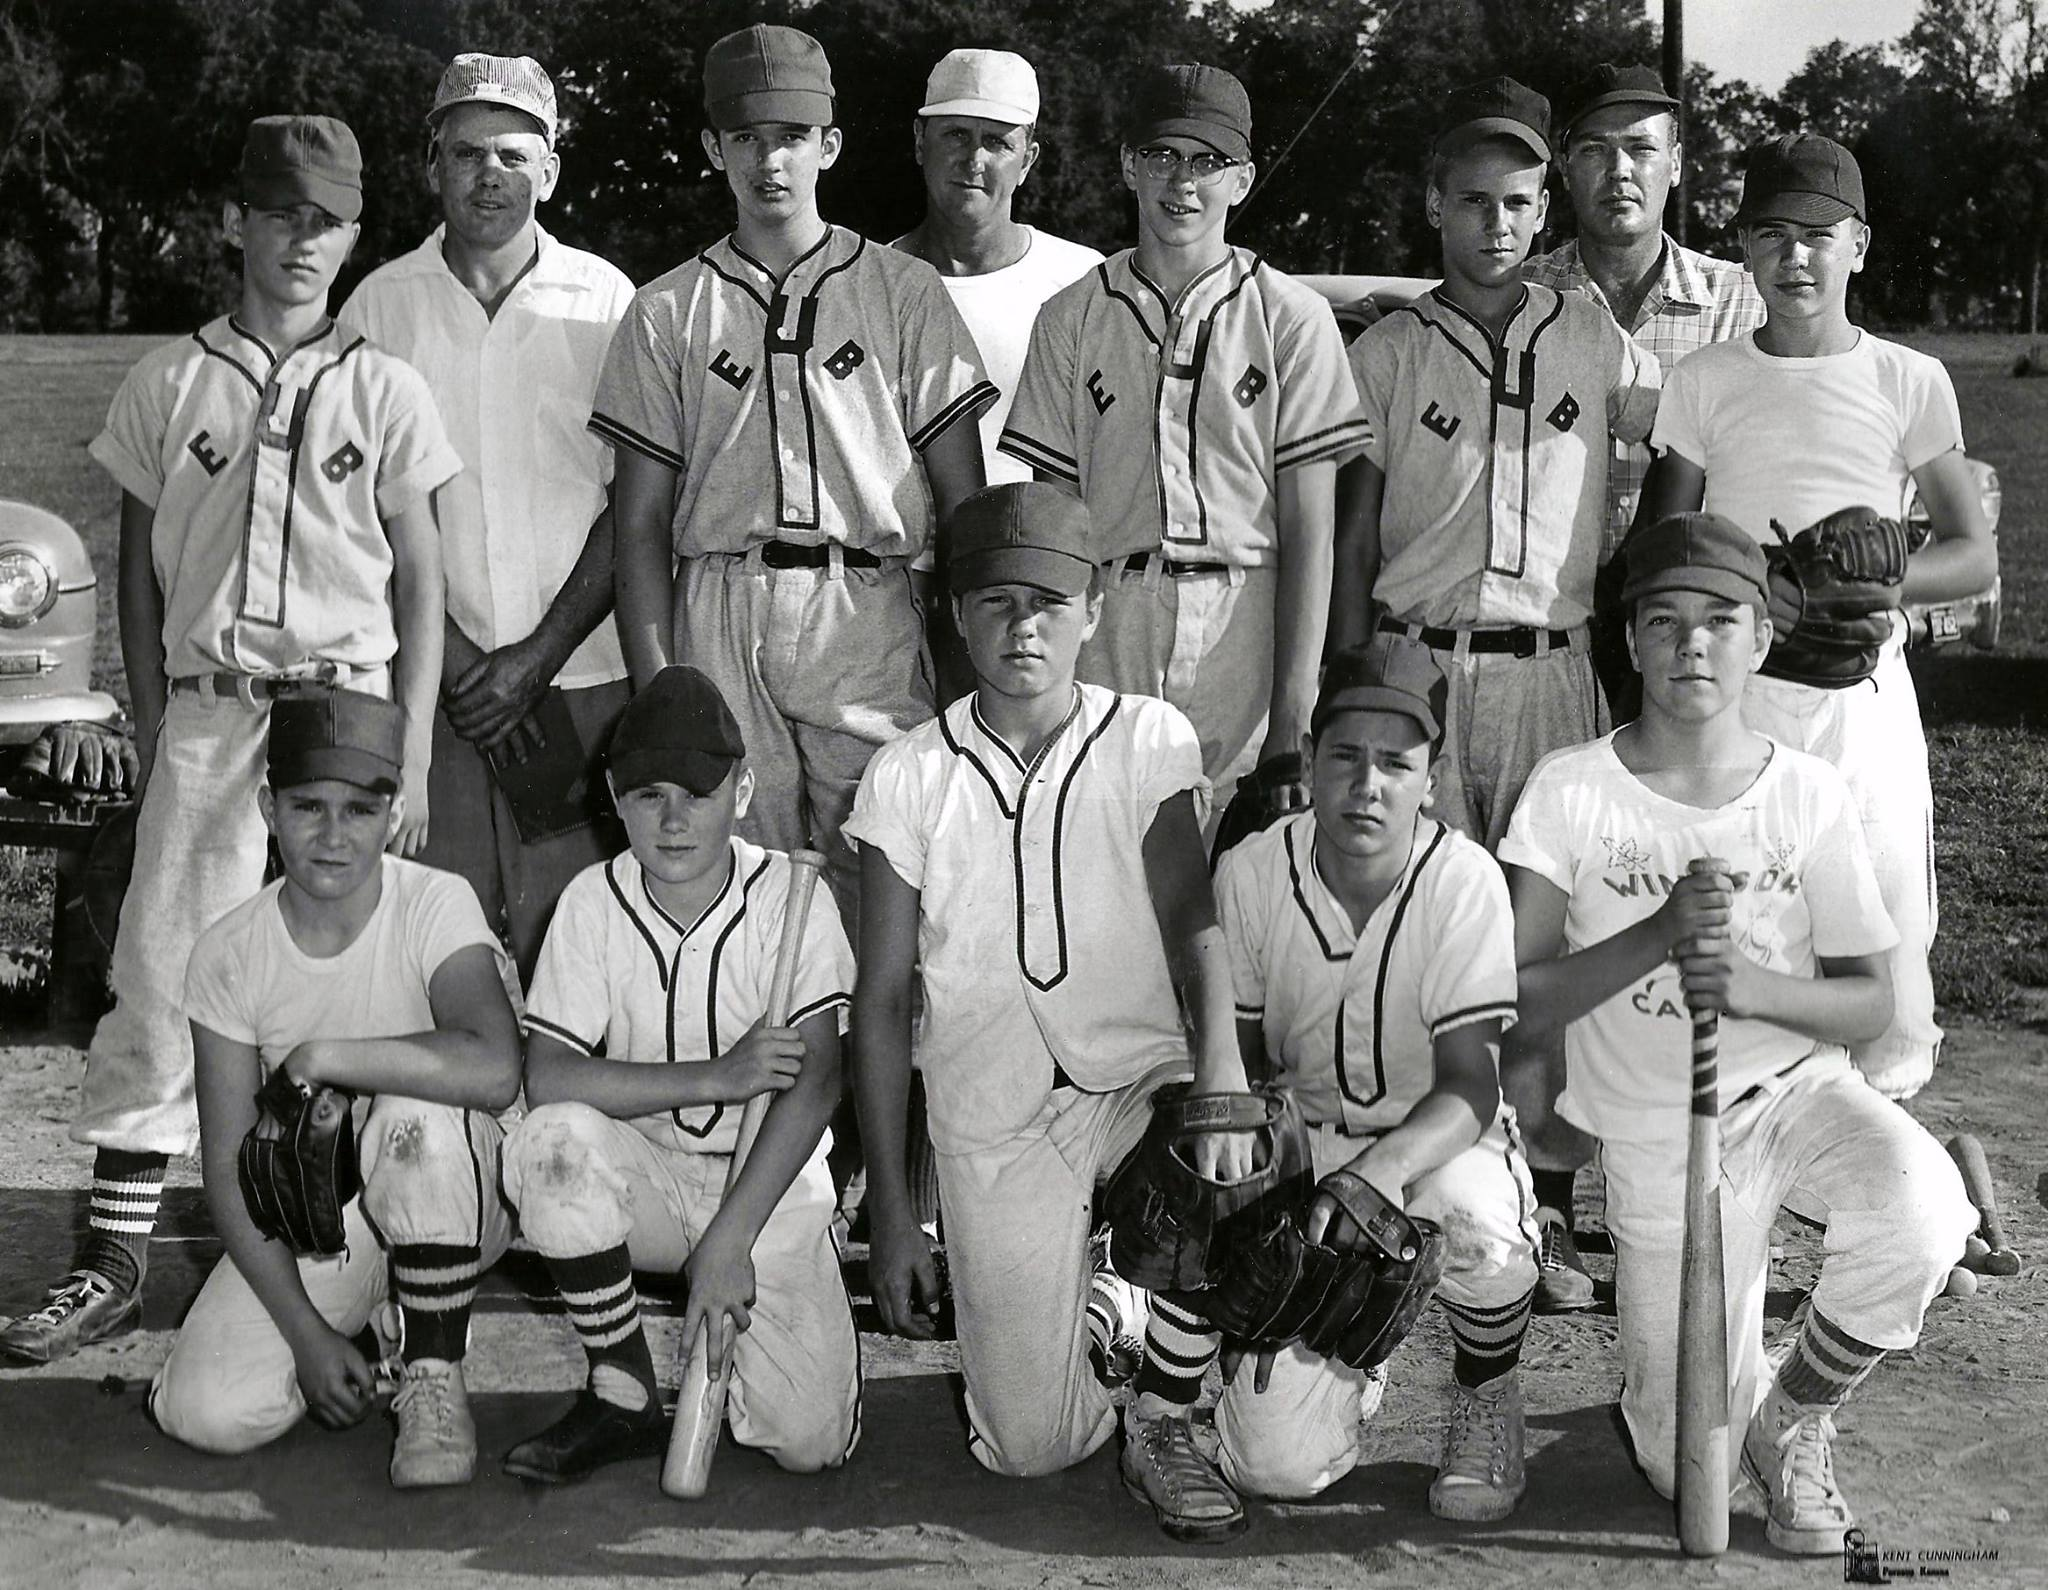 #39 P3 EUB Church 1956 baseball team